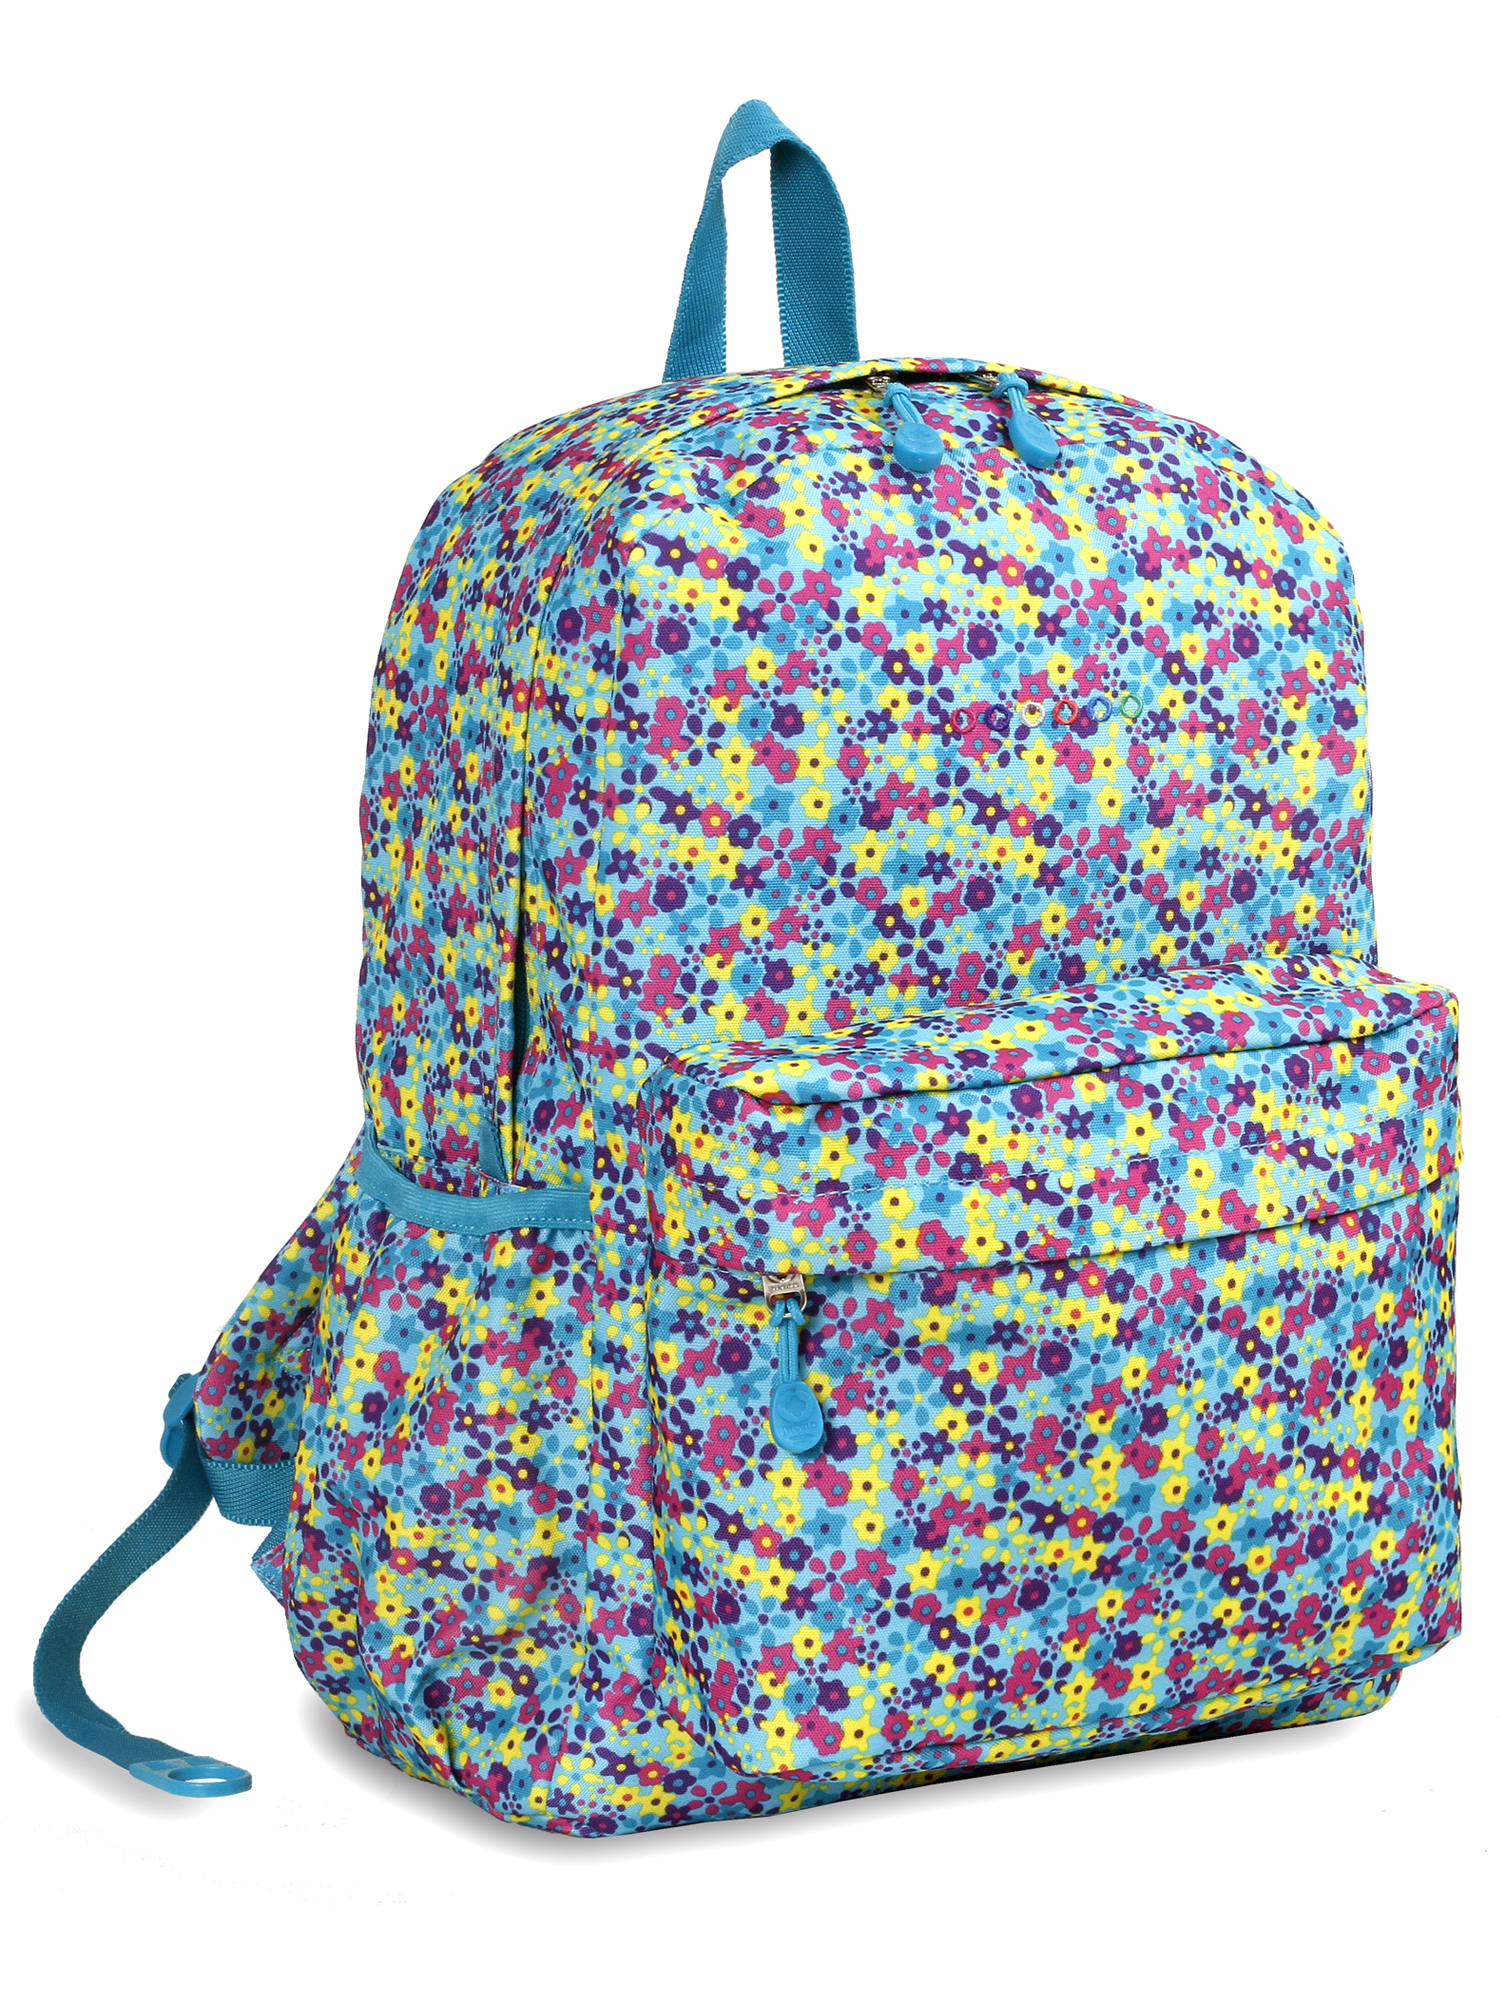 JWorld Floret Backpack